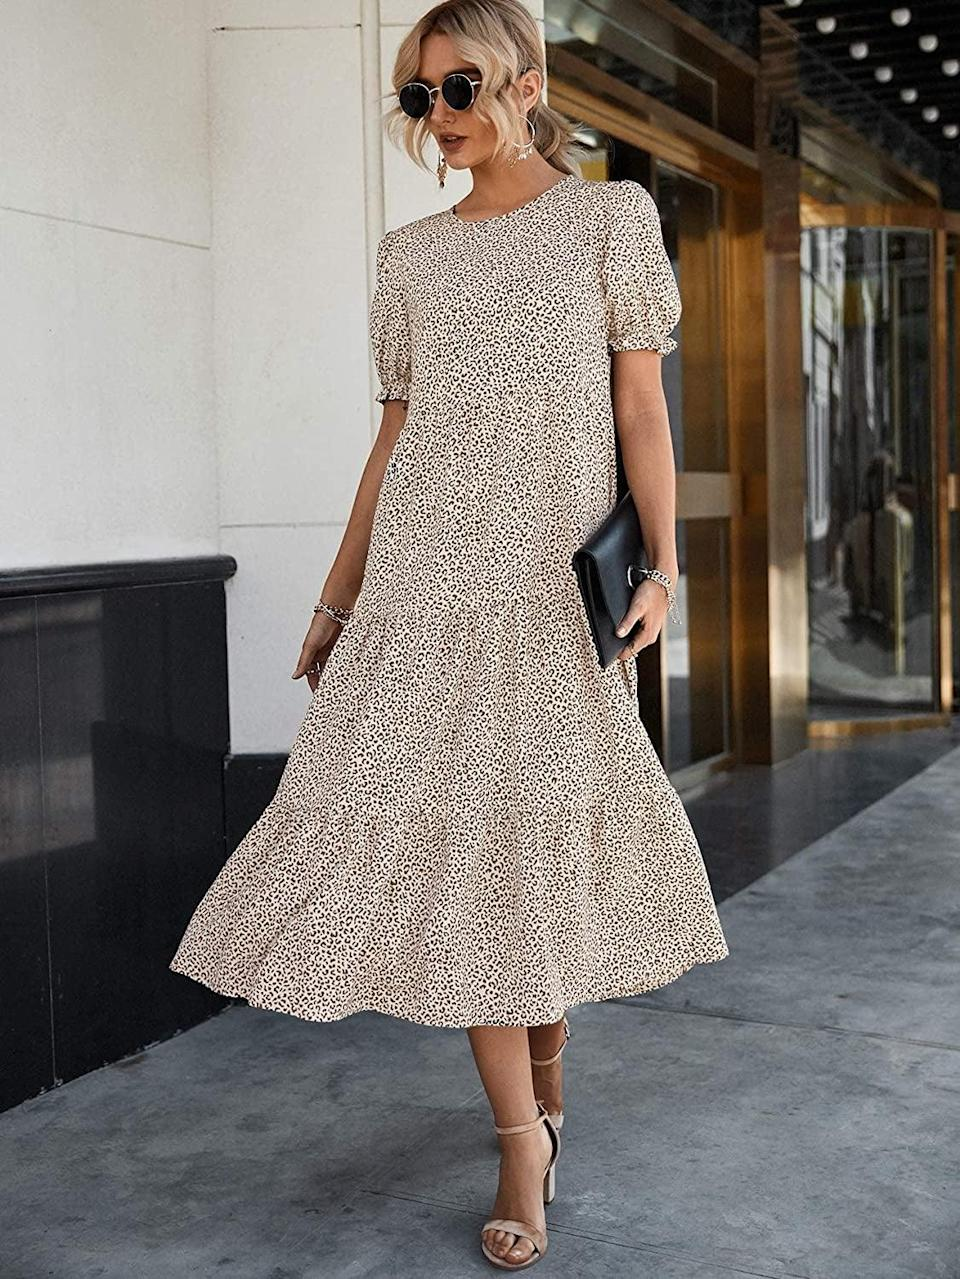 <p>This <span>PrettyGarden Summer Casual Boho Dress</span> ($43) looks easy to move around in, so you'll want to wear it all day. It's perfect for brunch parties or city afternoons.</p>